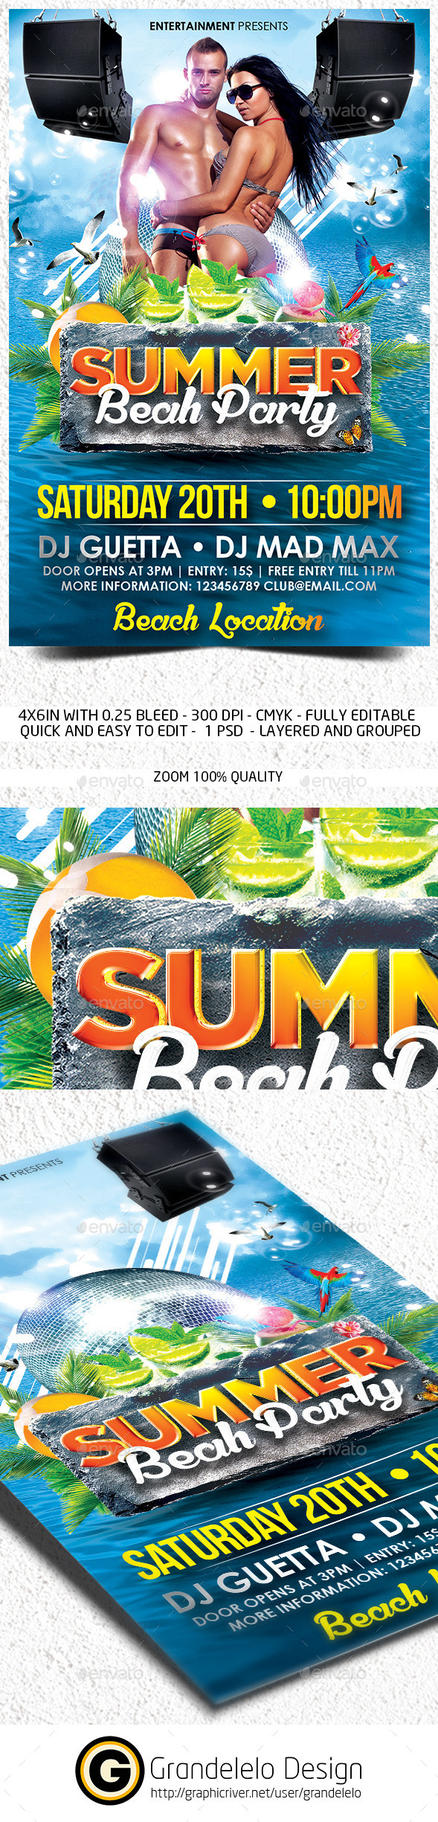 The Summer Beach Party Flyer Template by Grandelelo